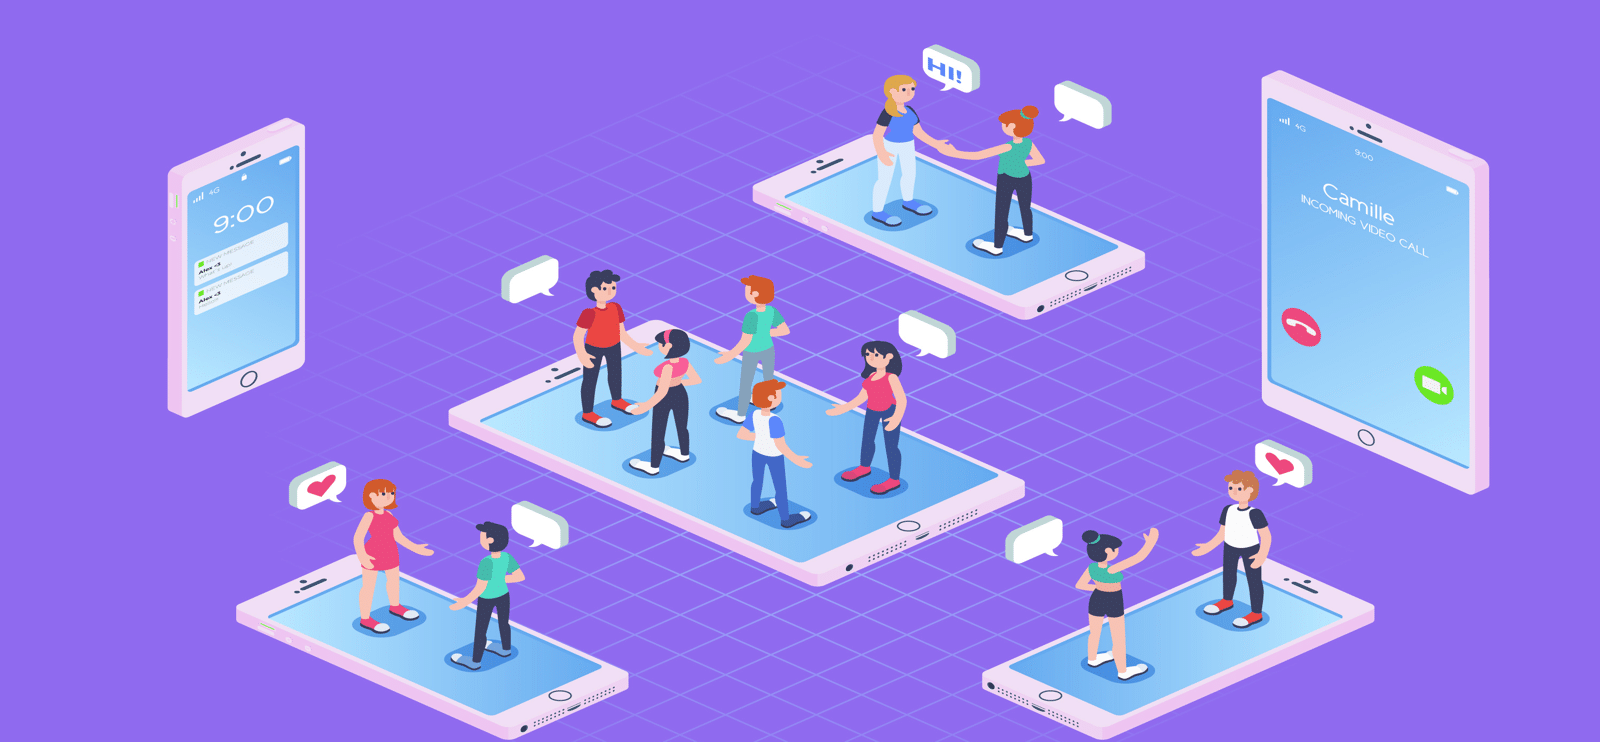 5 Essential Chat SDK Features